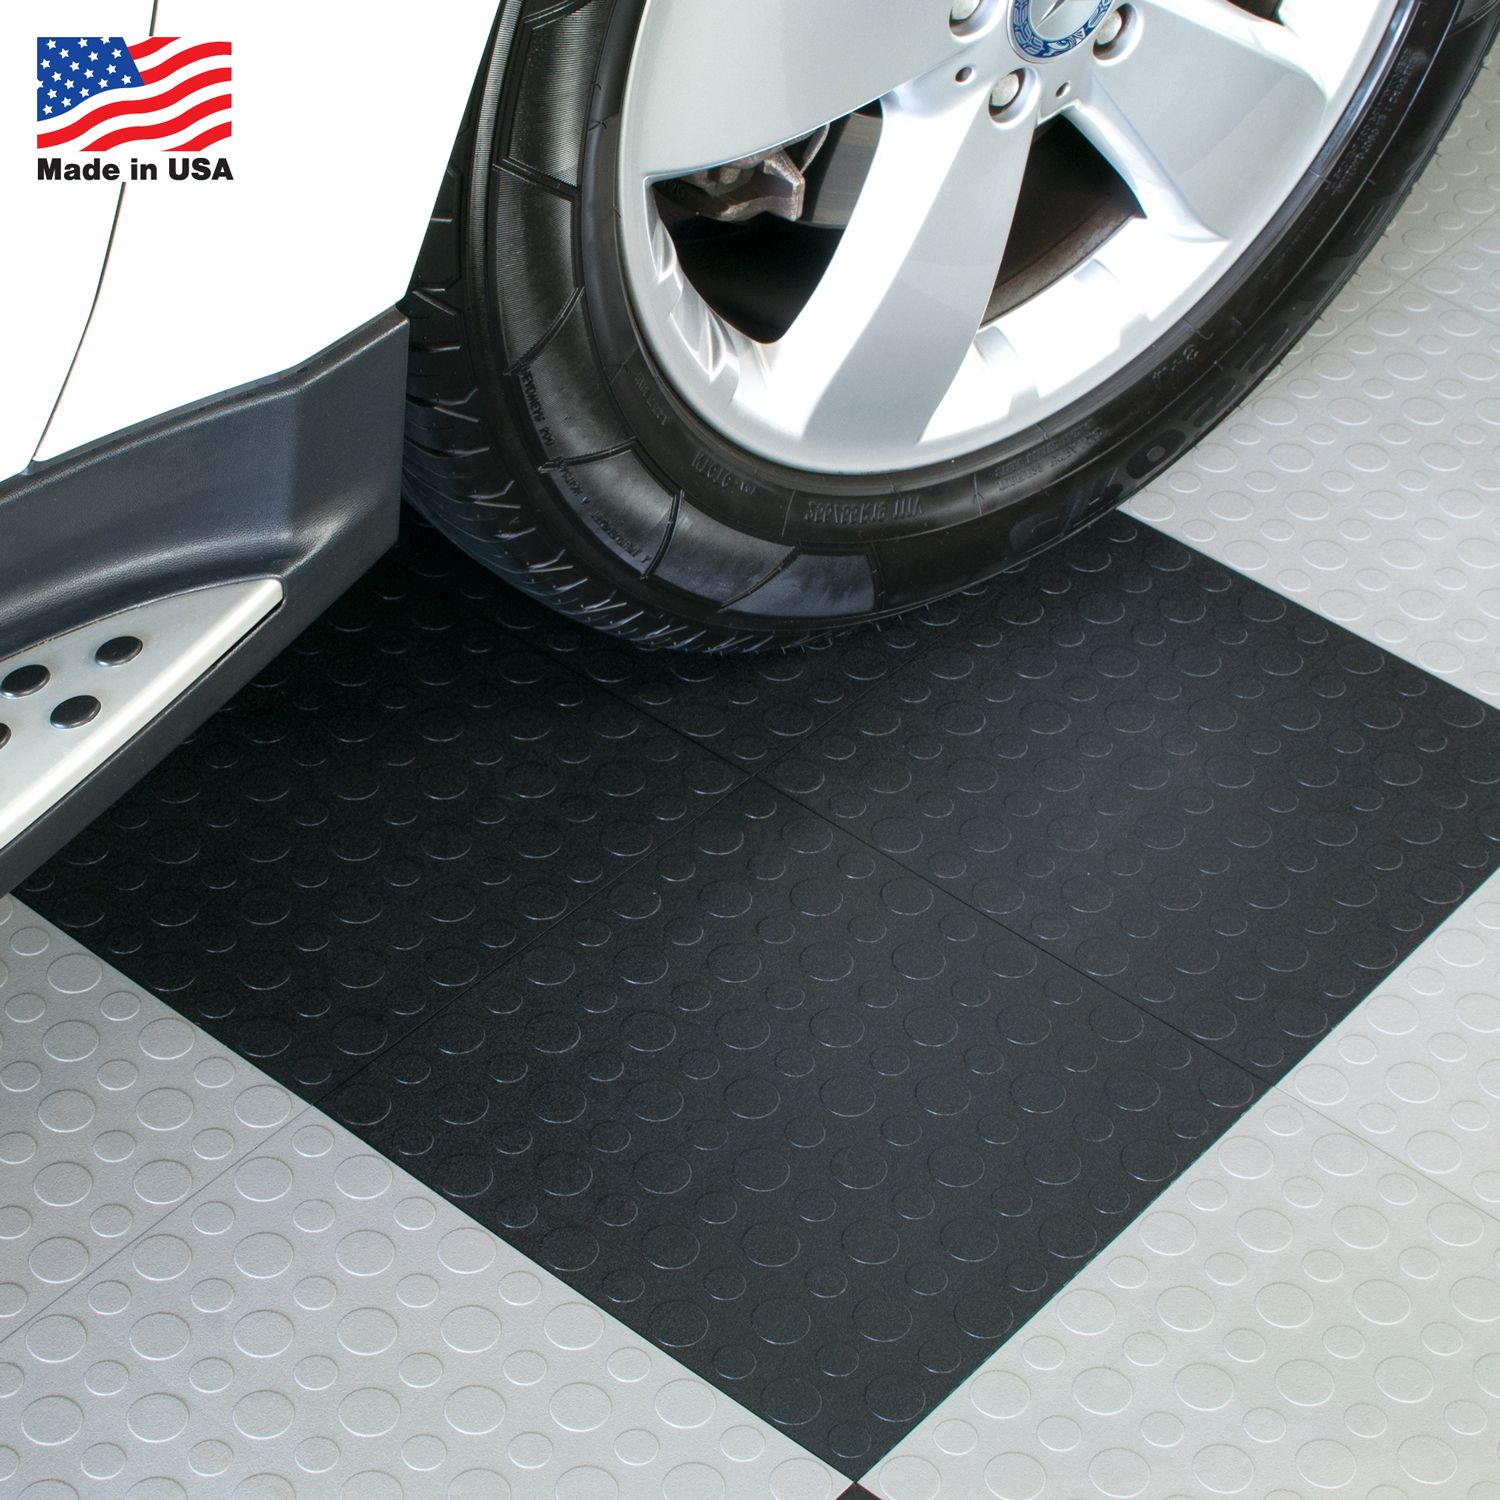 Immediately transform your garage with interlocking floor tiles immediately transform your garage with interlocking floor tiles these durable garage tiles are proudly made doublecrazyfo Gallery